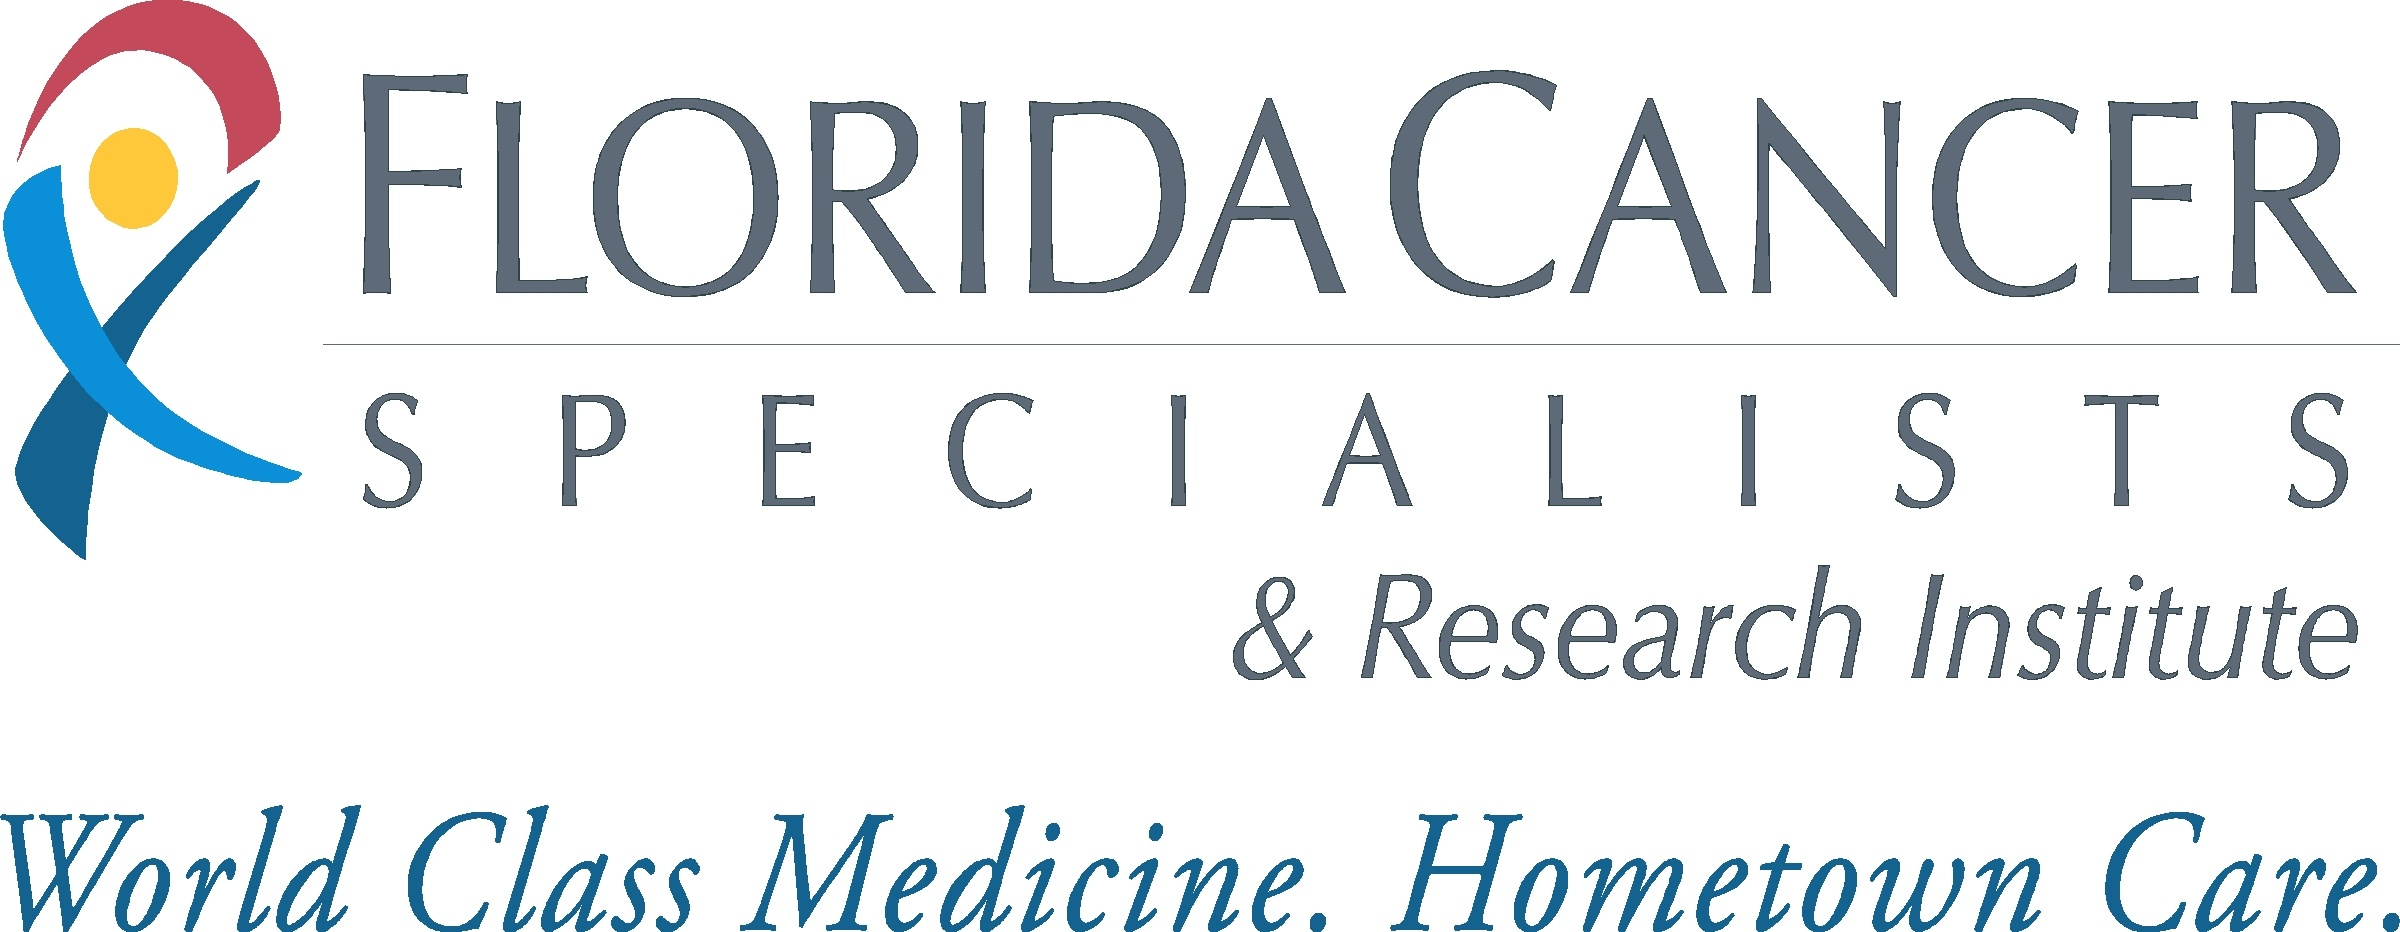 Fla_Cancer_Logo_with_Tagline.jpg